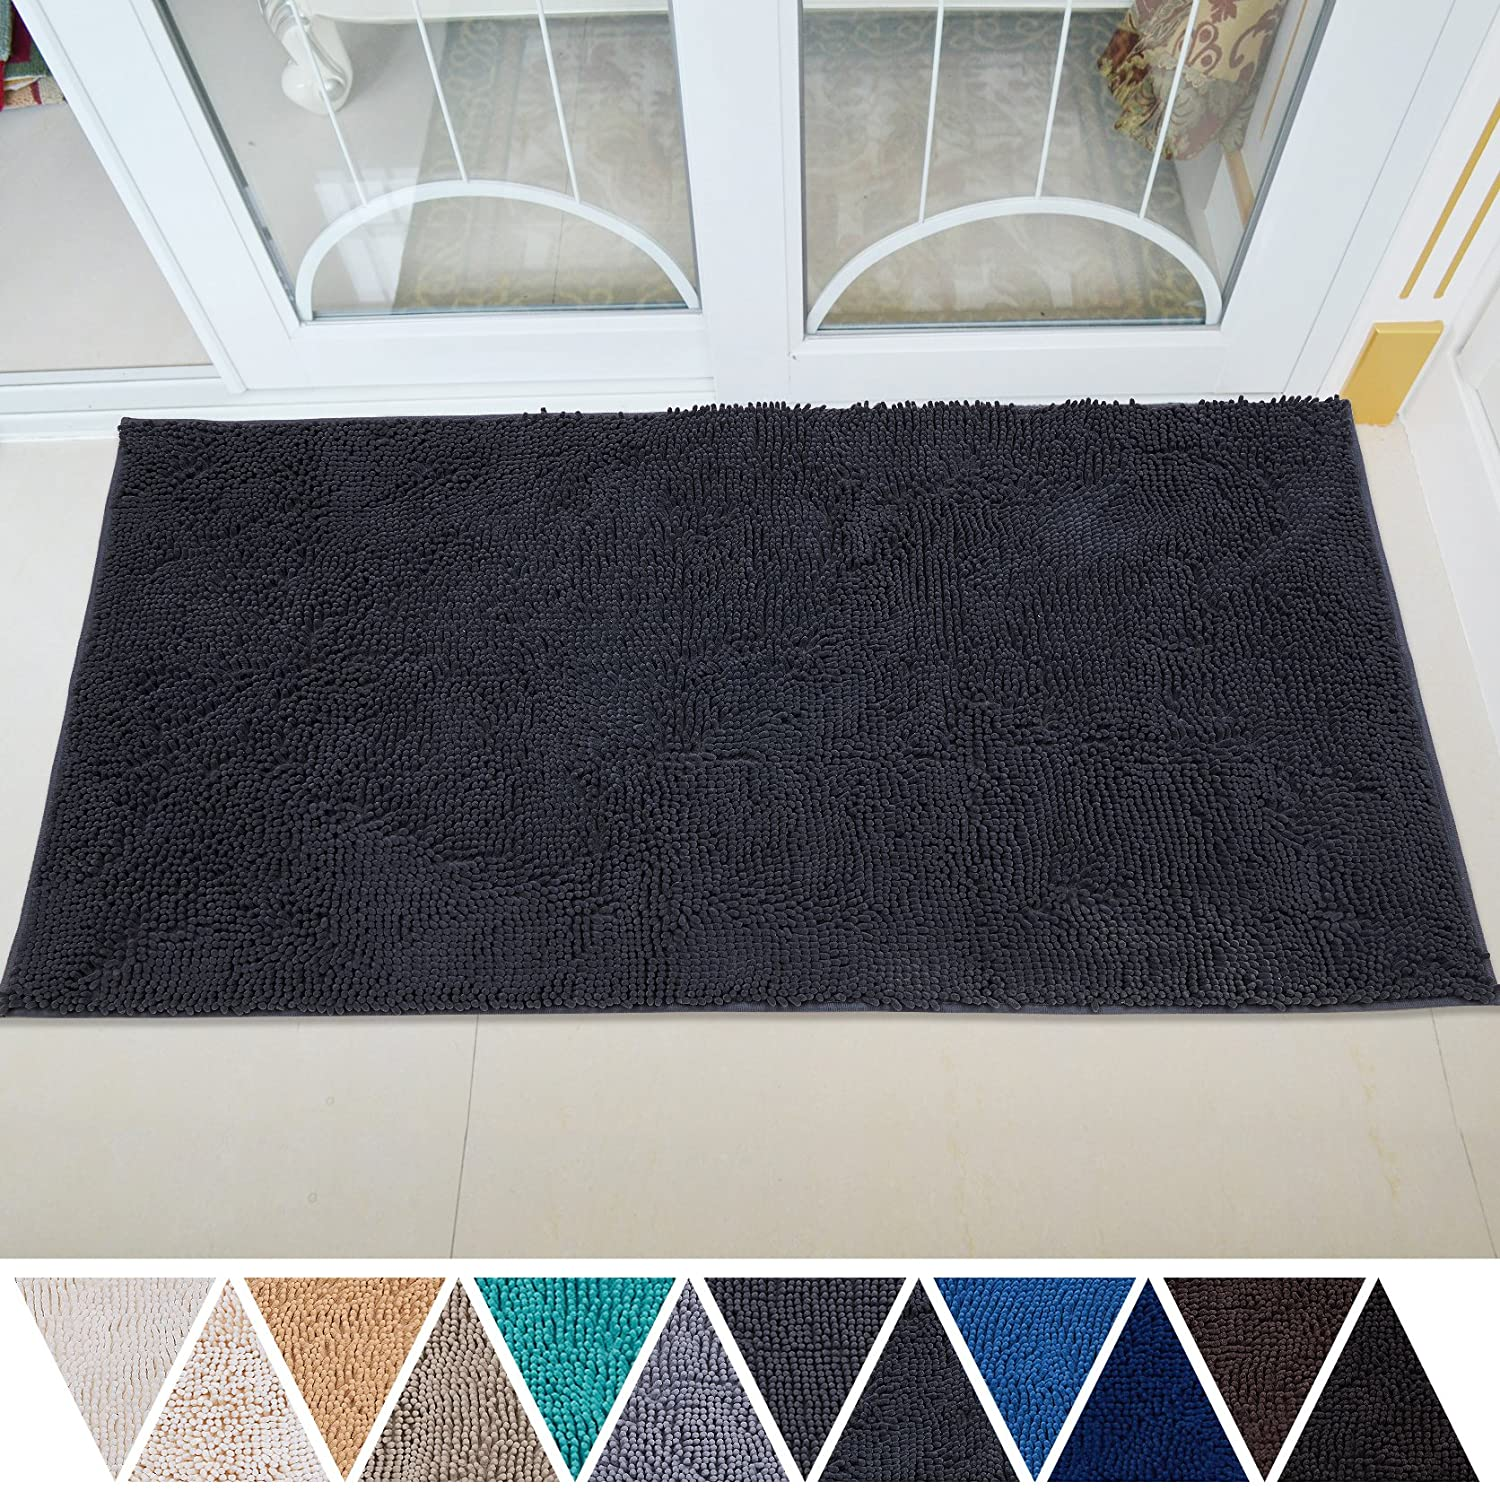 DEARTOWN 24x39 Bathroom Rug Carpet, Non-Slip Quick Drying Bath Mat with Water Absorbent Soft Microfibers of - Black